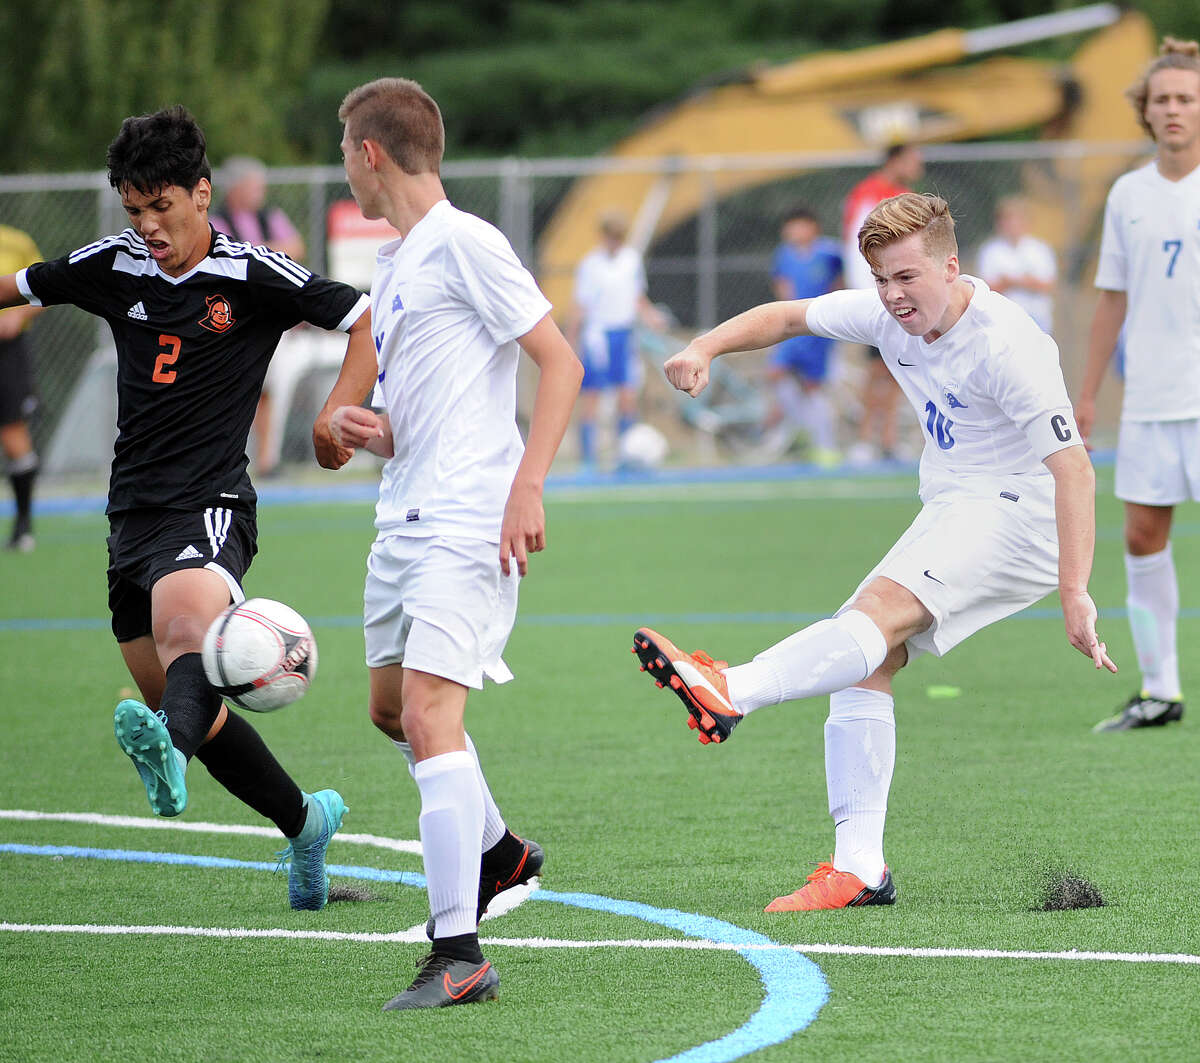 At left, Stamford's Ariel Sandoval (#2) is unable to block the scoring strike of Darien's Hunter Kooyman (#10), right, who connected for the second goal of the game during the boys high school soccer match between Darien High School and Stamford High School at Darien, Conn., Tuesday, Sept. 22, 2015. Darien won the match over Stamford, 5-2.